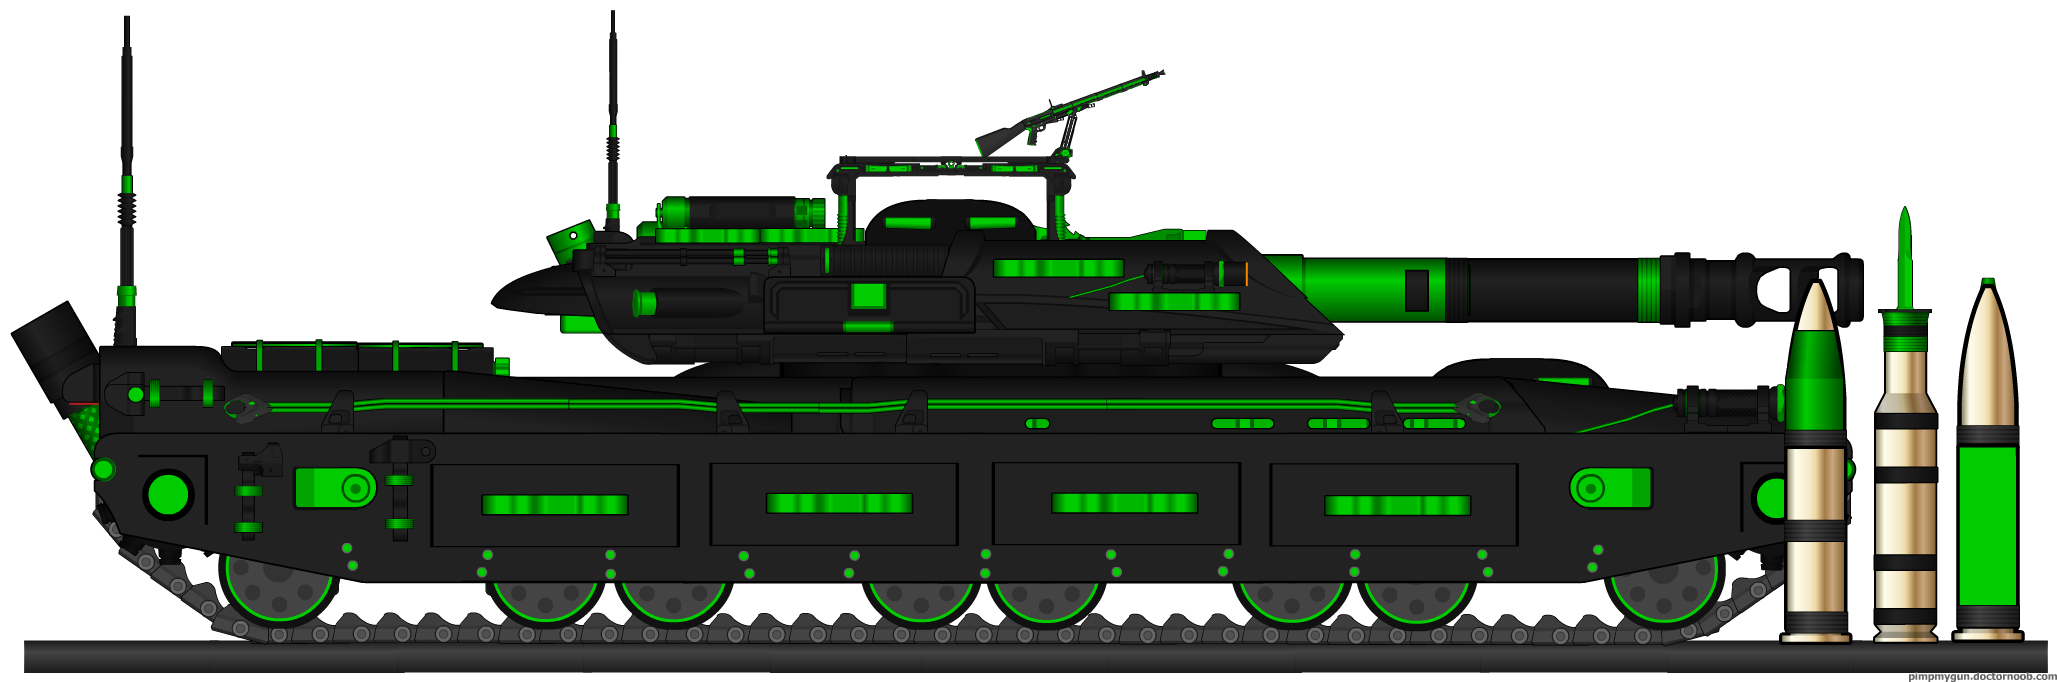 NFA Main Battle Tank Ausf. 2 by HaX0r332